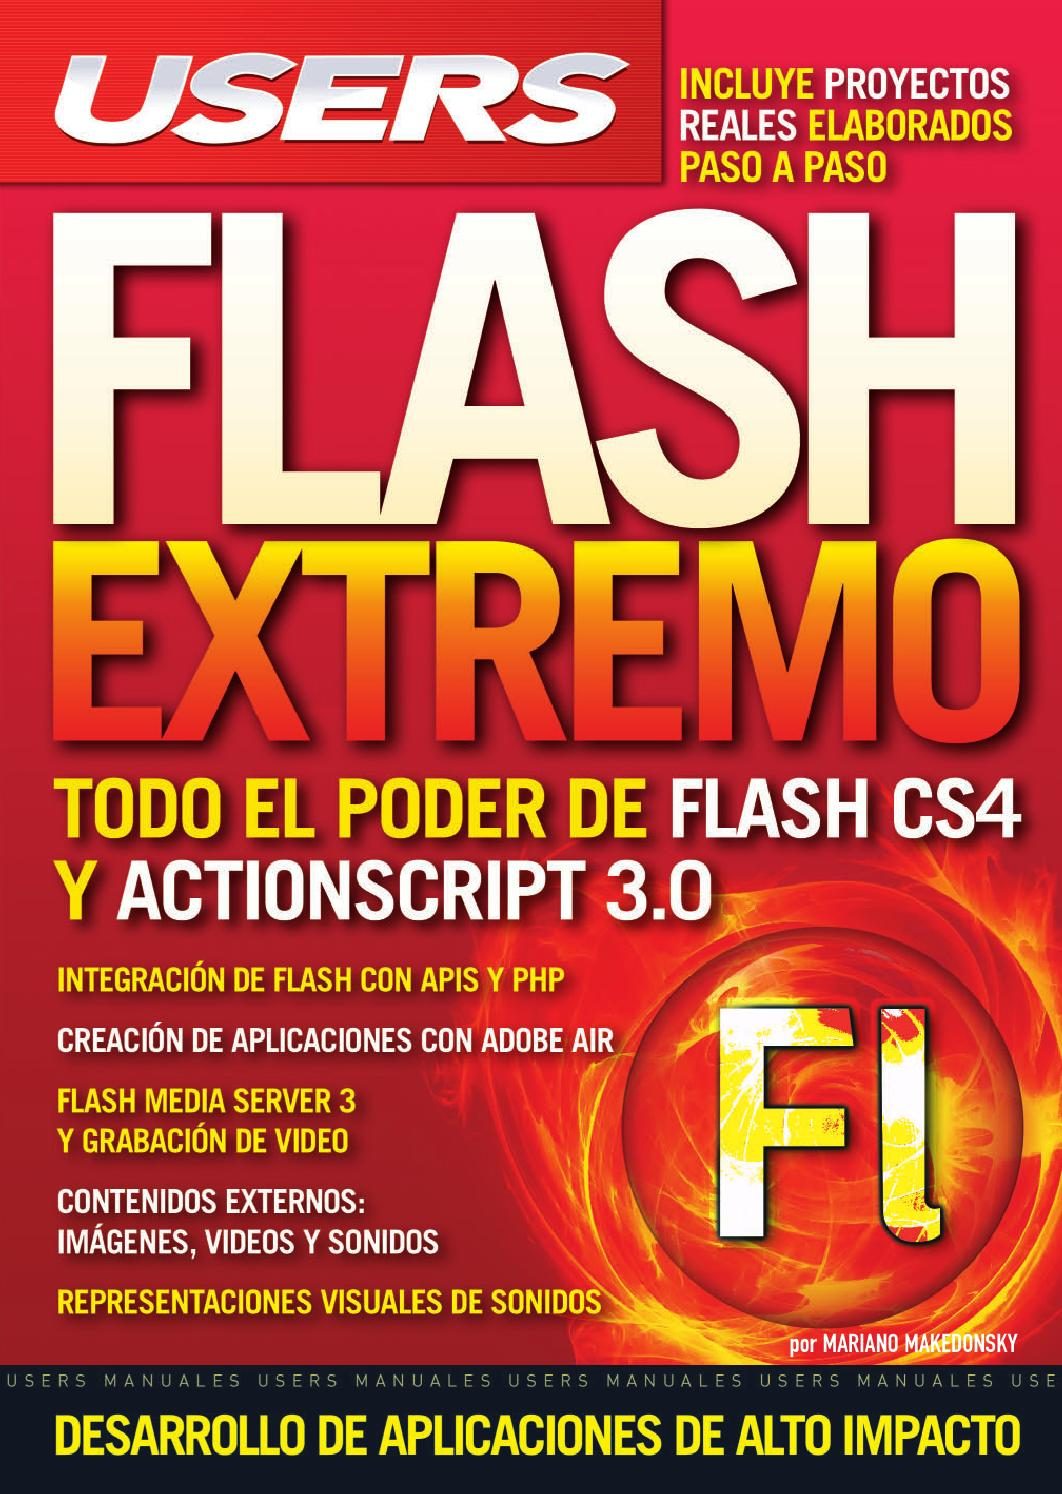 FLASH EXTREMO by GIUTPL - issuu